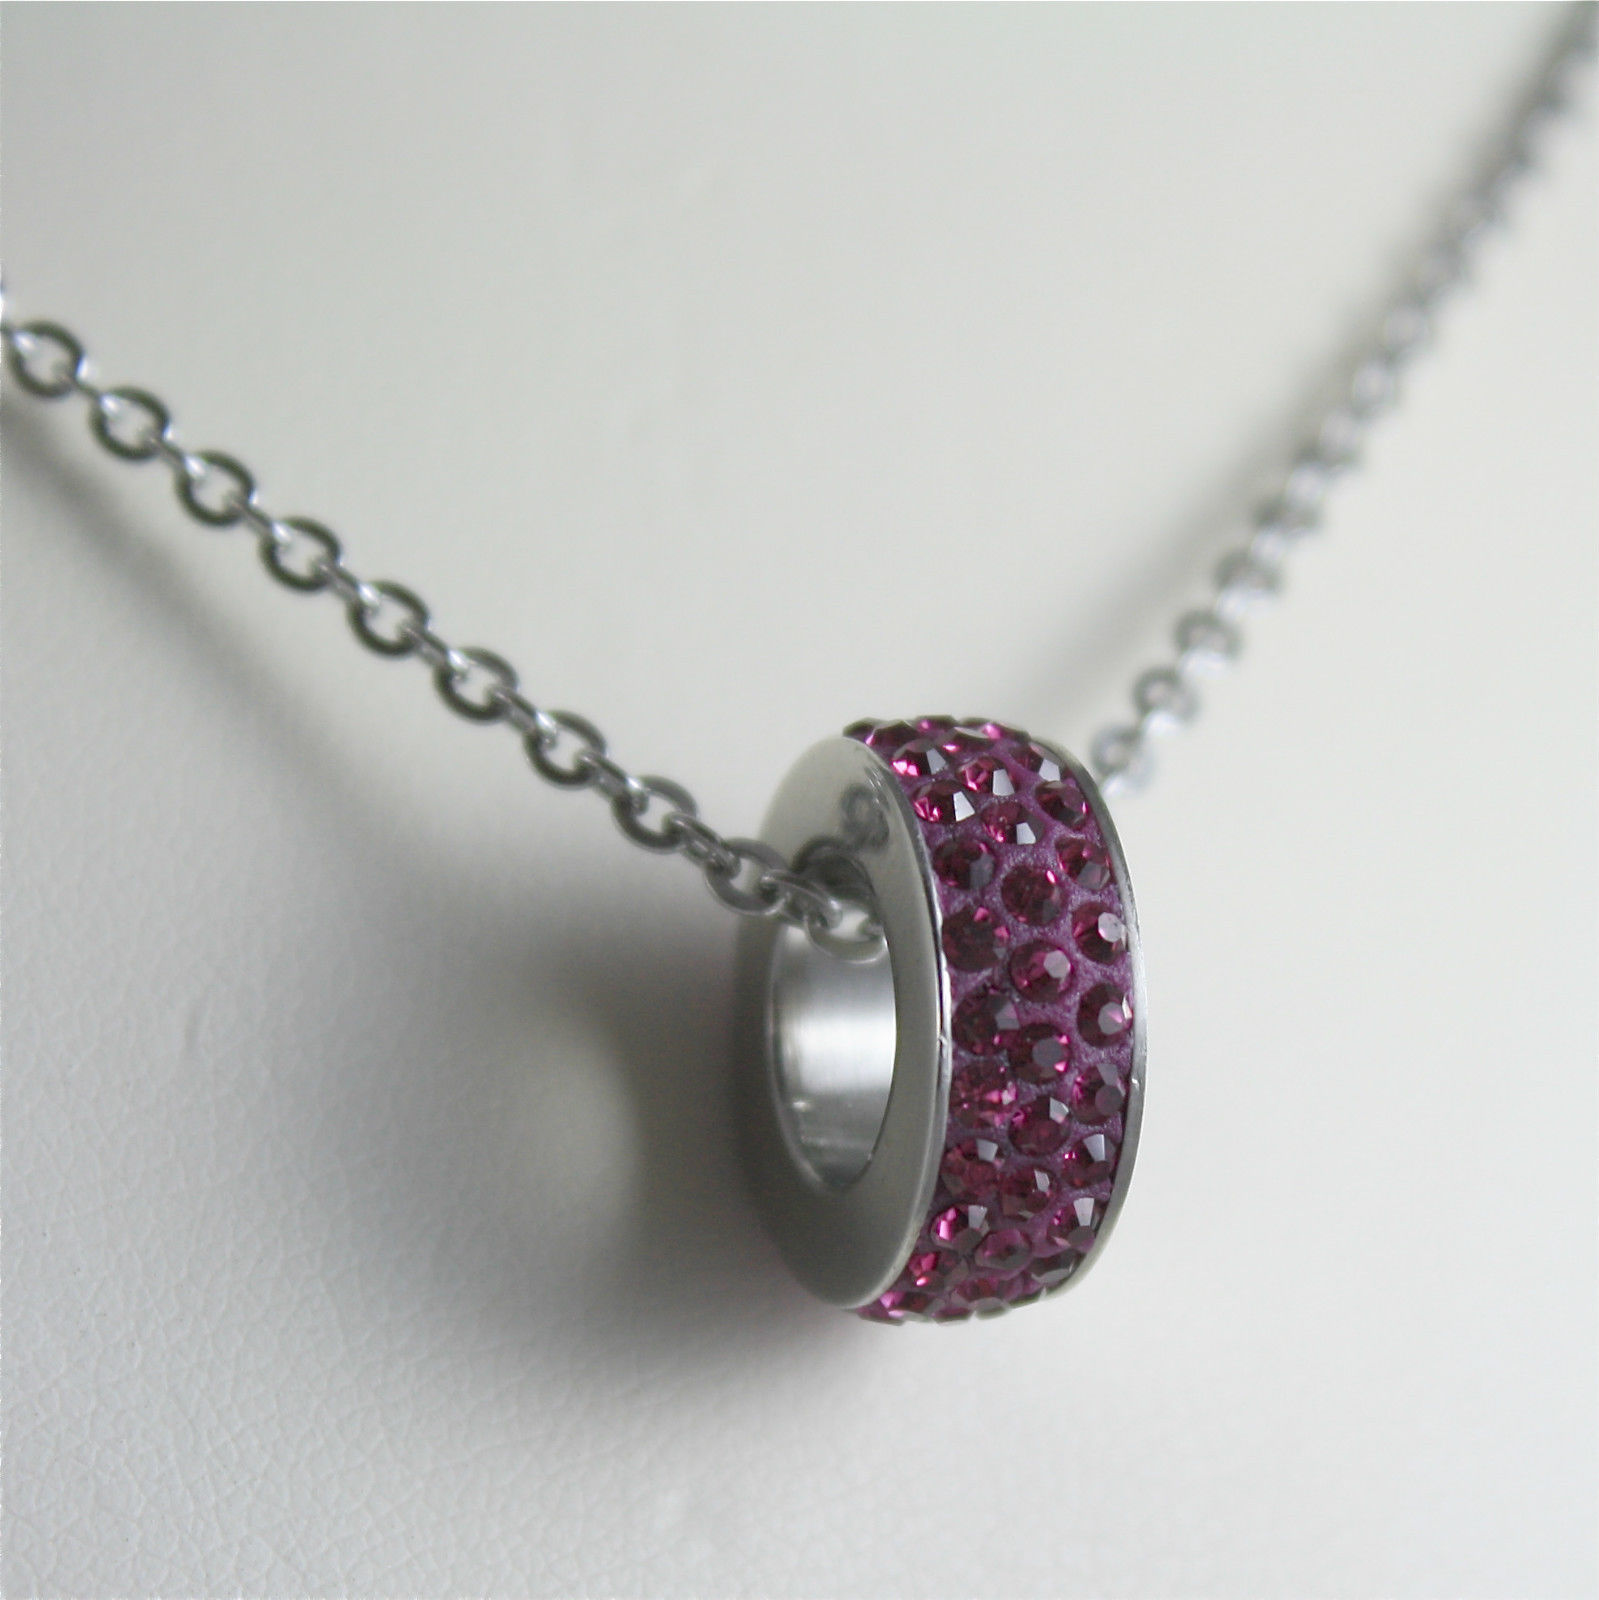 S'AGAPO' NECKLACE, 316L STEEL, FUXIA PENDANT WITH FACETED CRYSTALS.